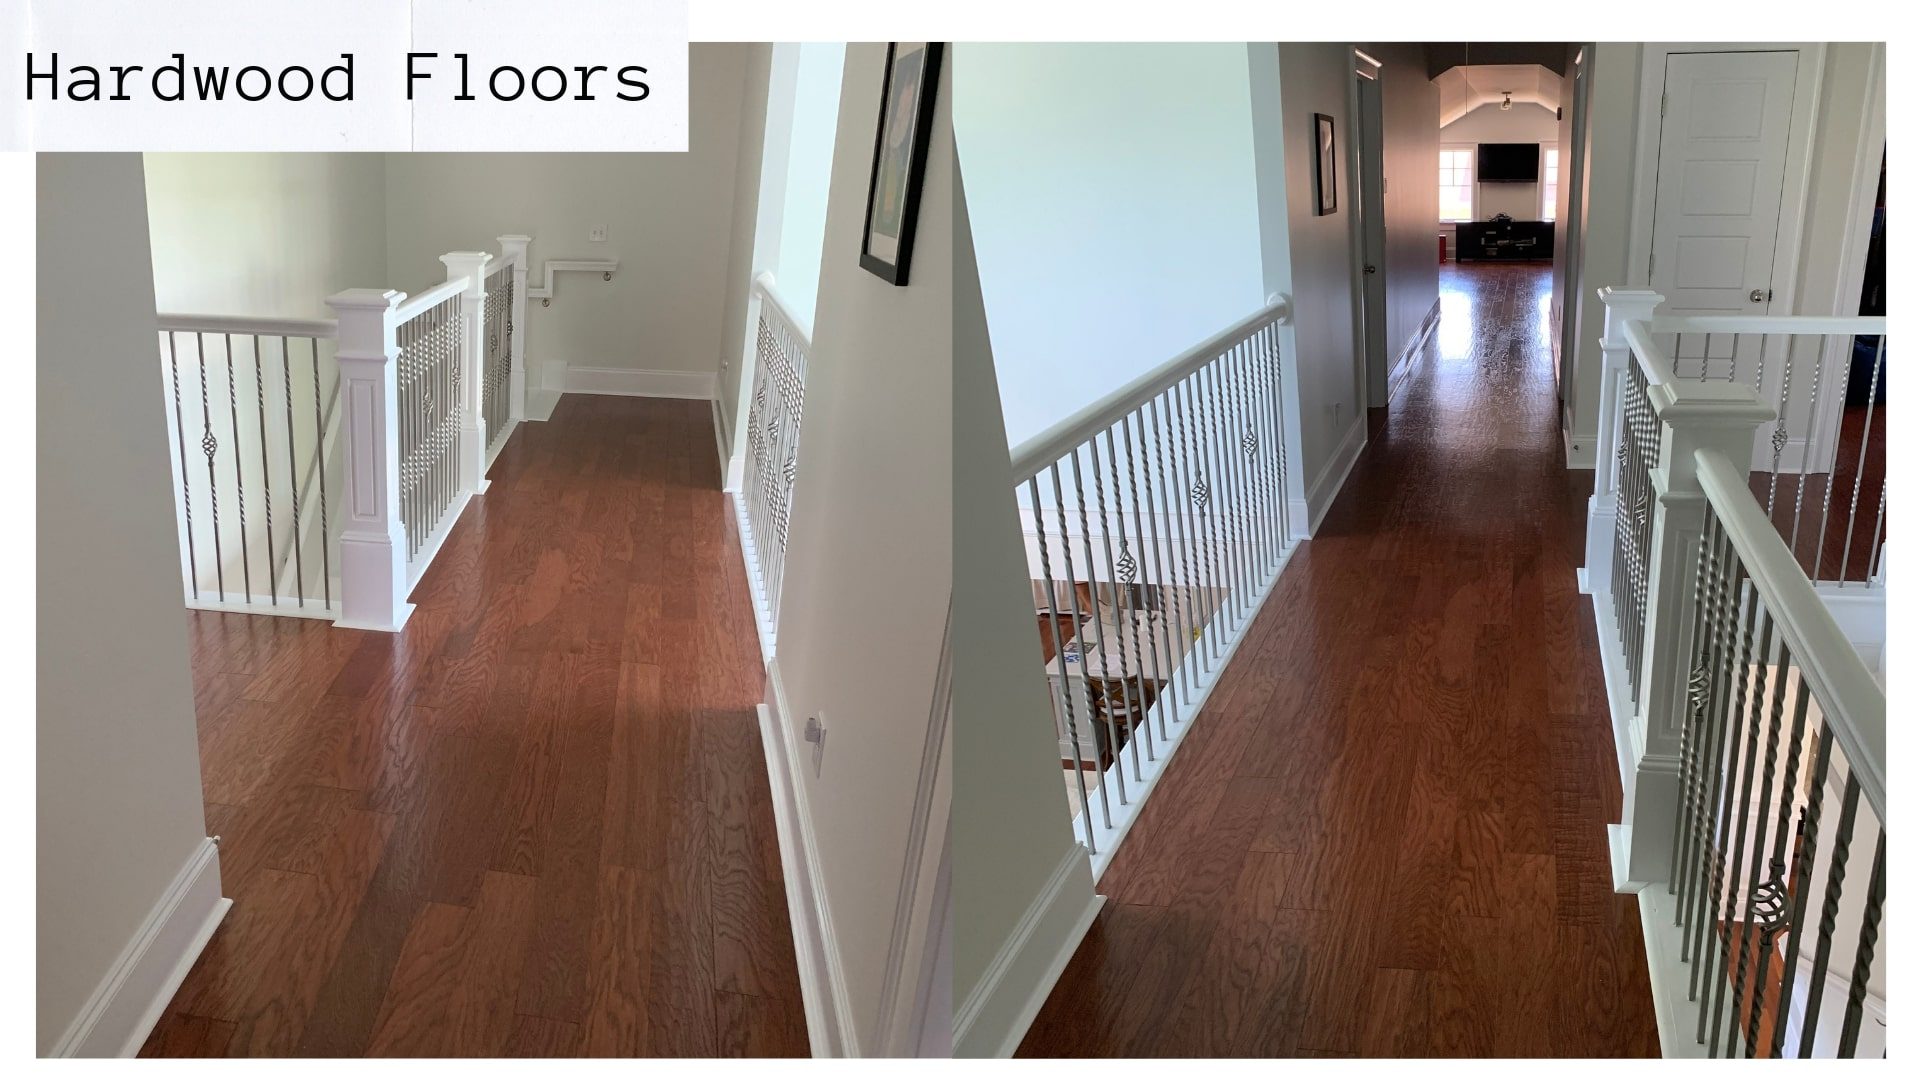 carpeted to hardwood flooring auburn.jpg